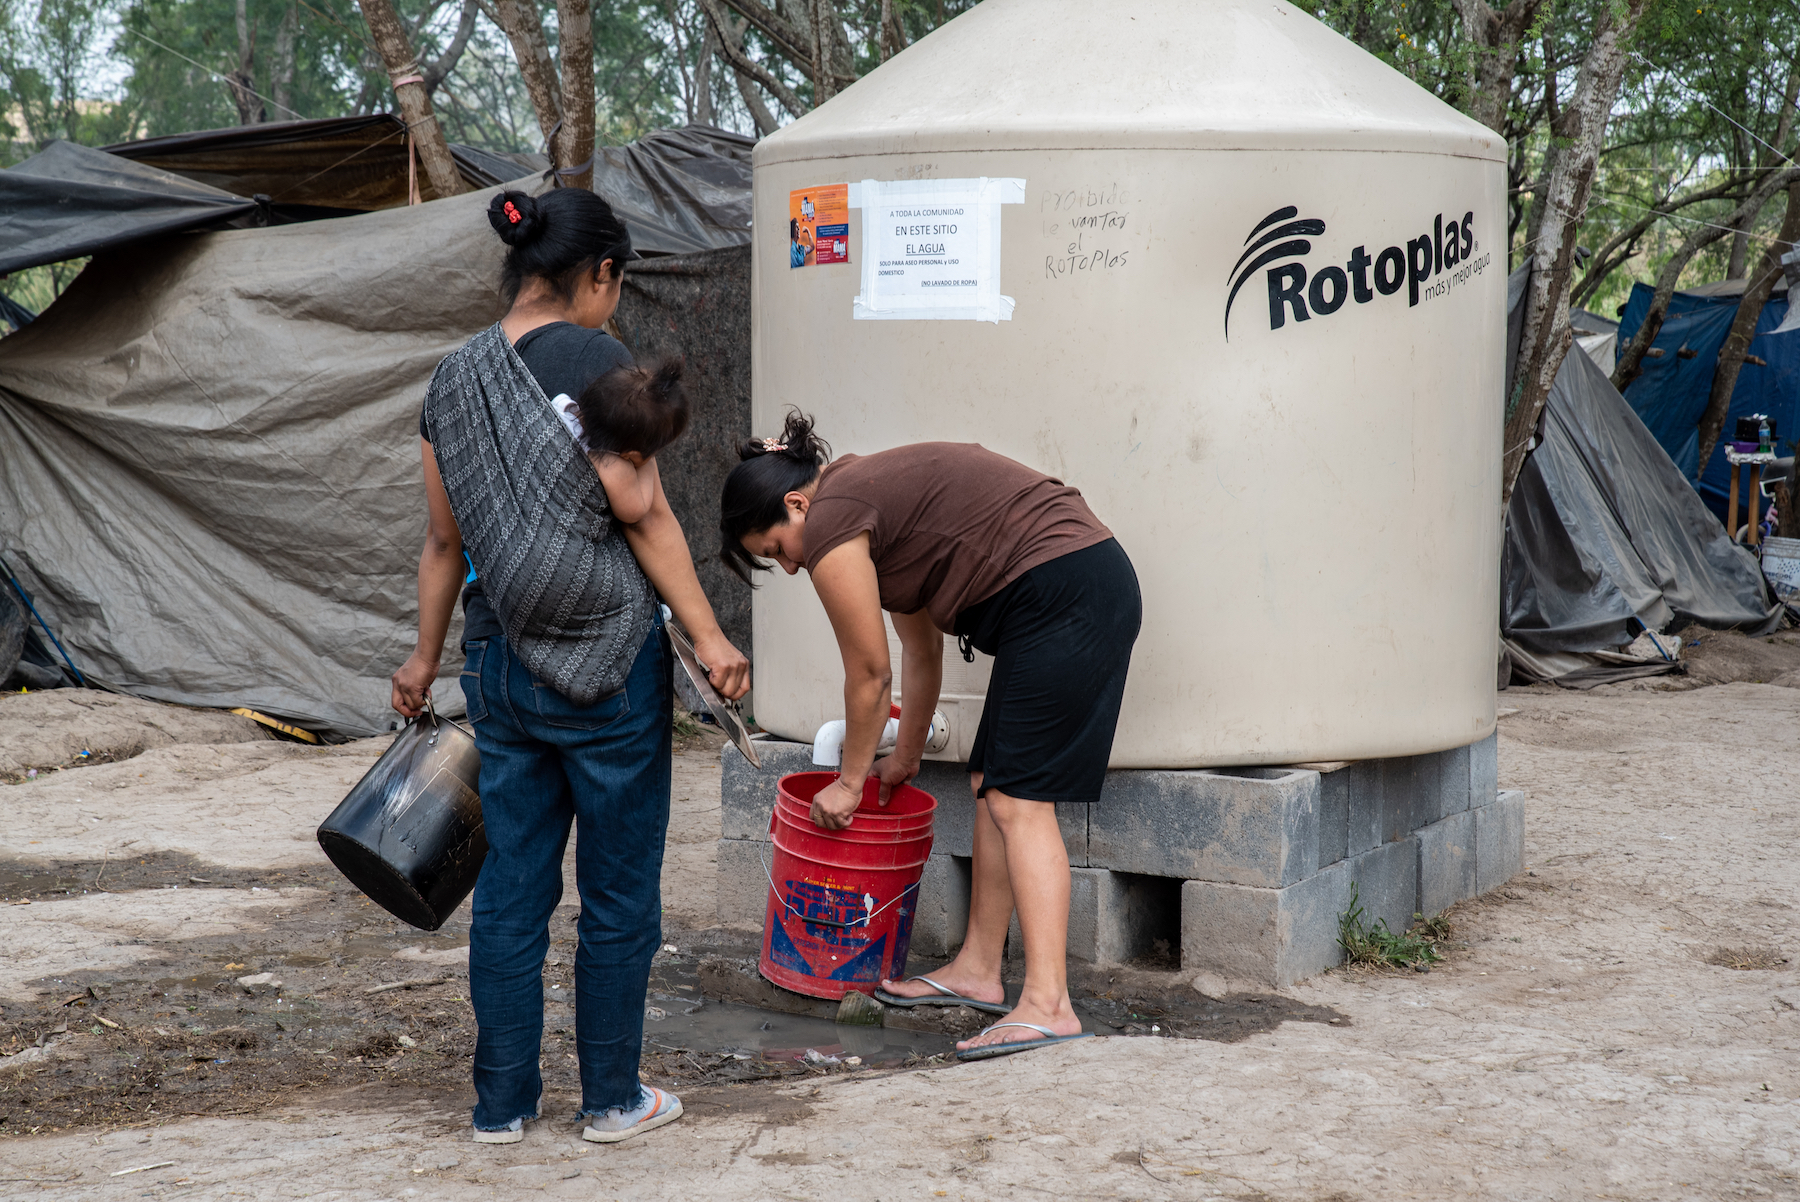 Women pour clean water into a bucket at the camp on March 2. Photo: Sergio Flores/VICE News.